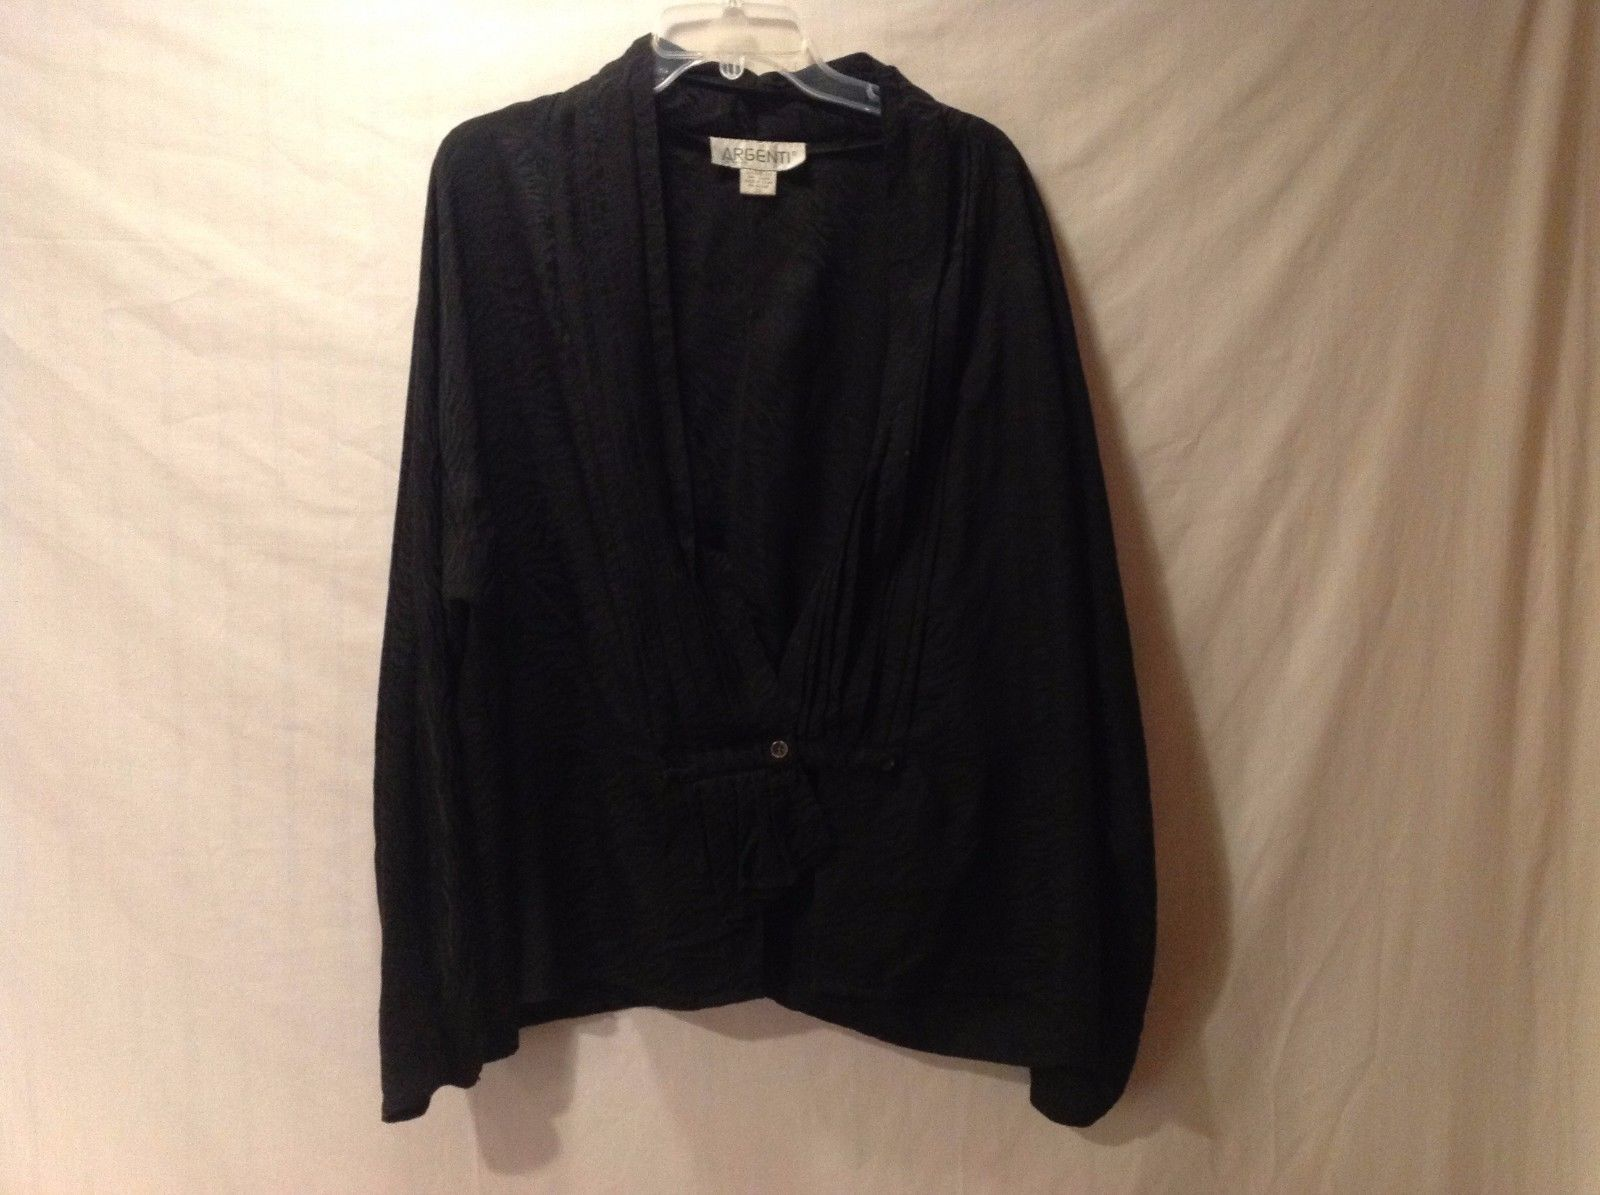 preowned excellent condition size 22 100% silk black argenti v-line cardigan